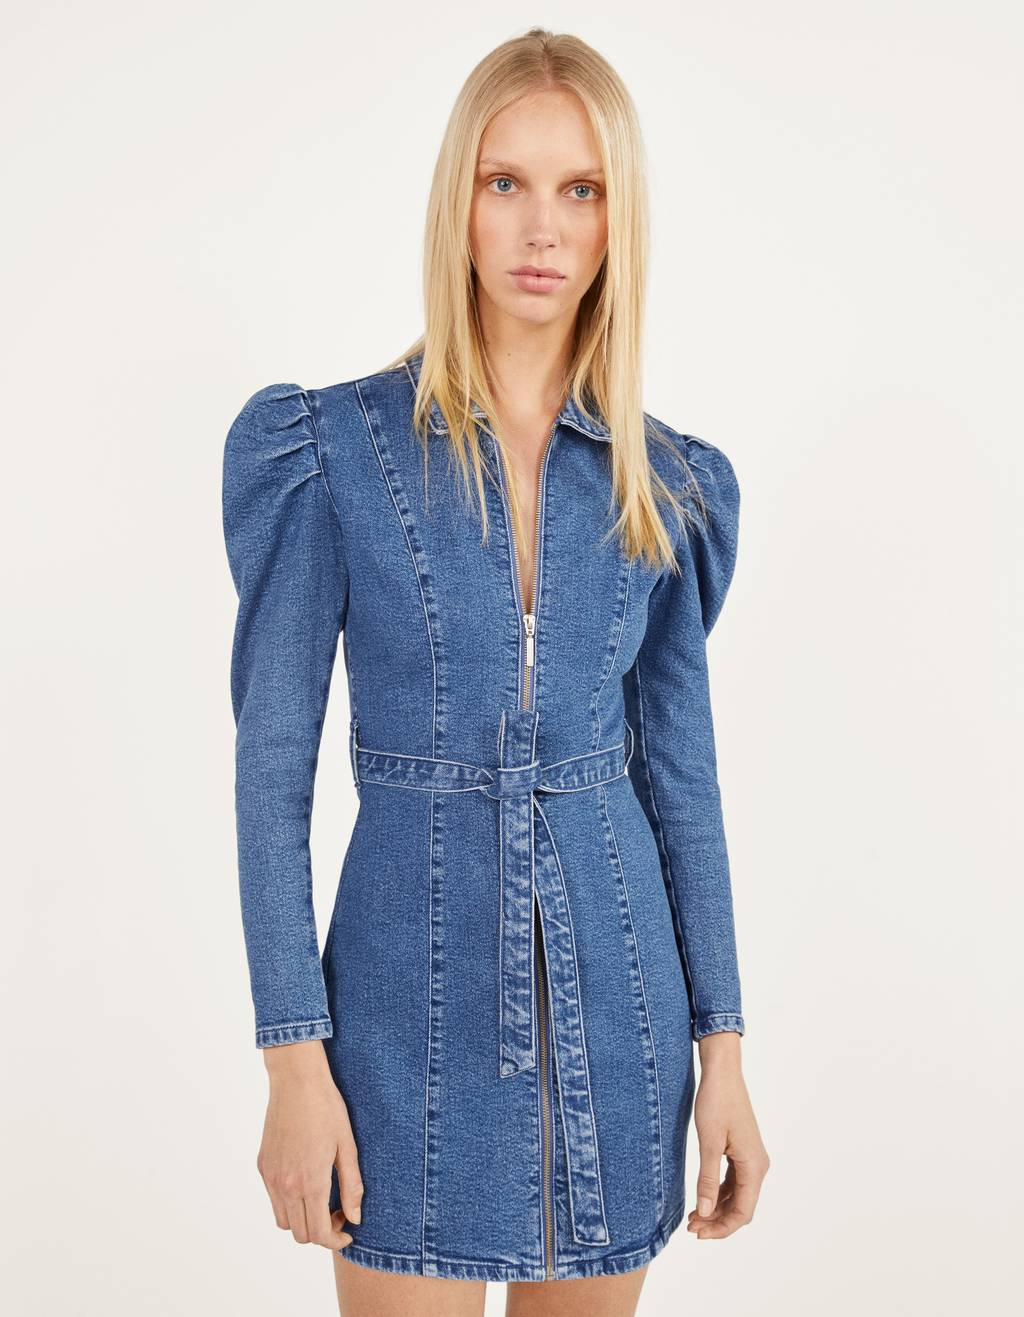 Vestito in denim con cerniera